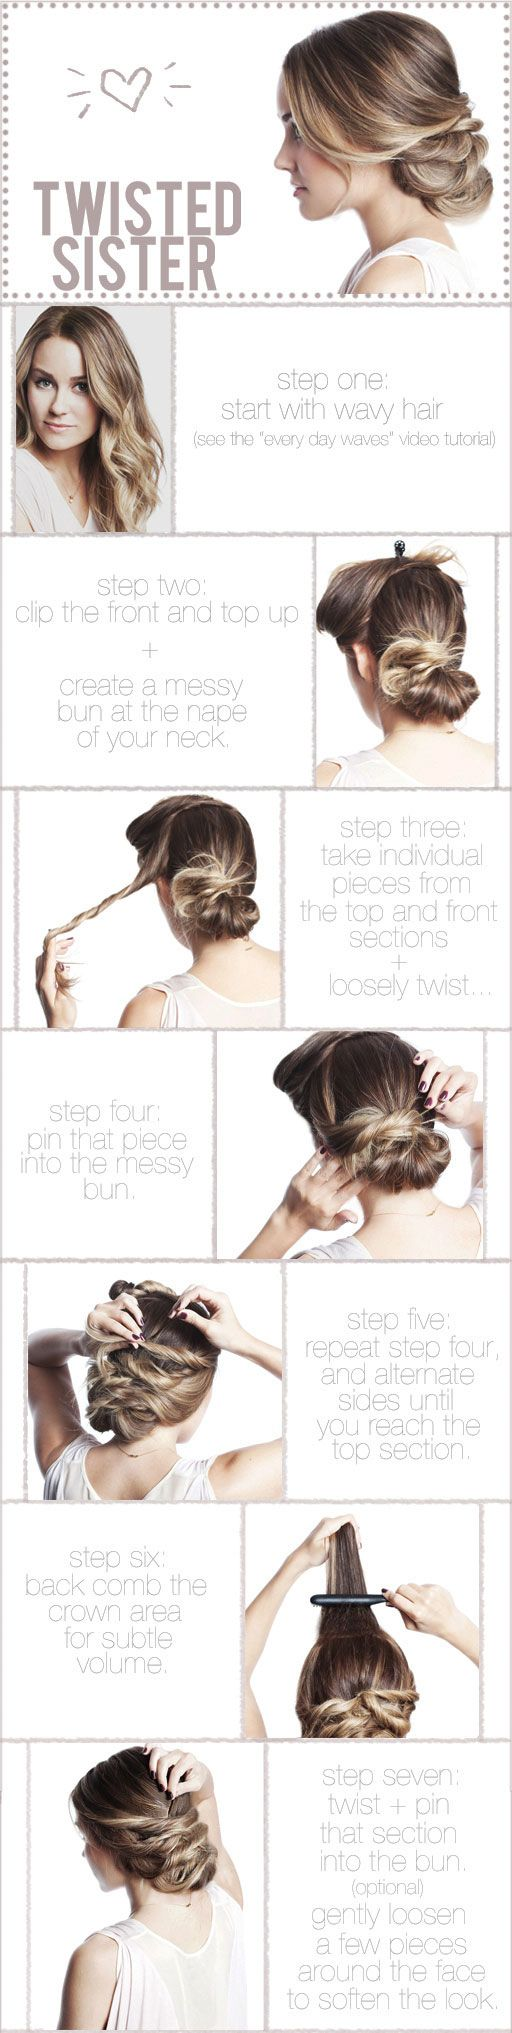 5 DIY Hairstyles Perfect for Pre-Wedding Parties